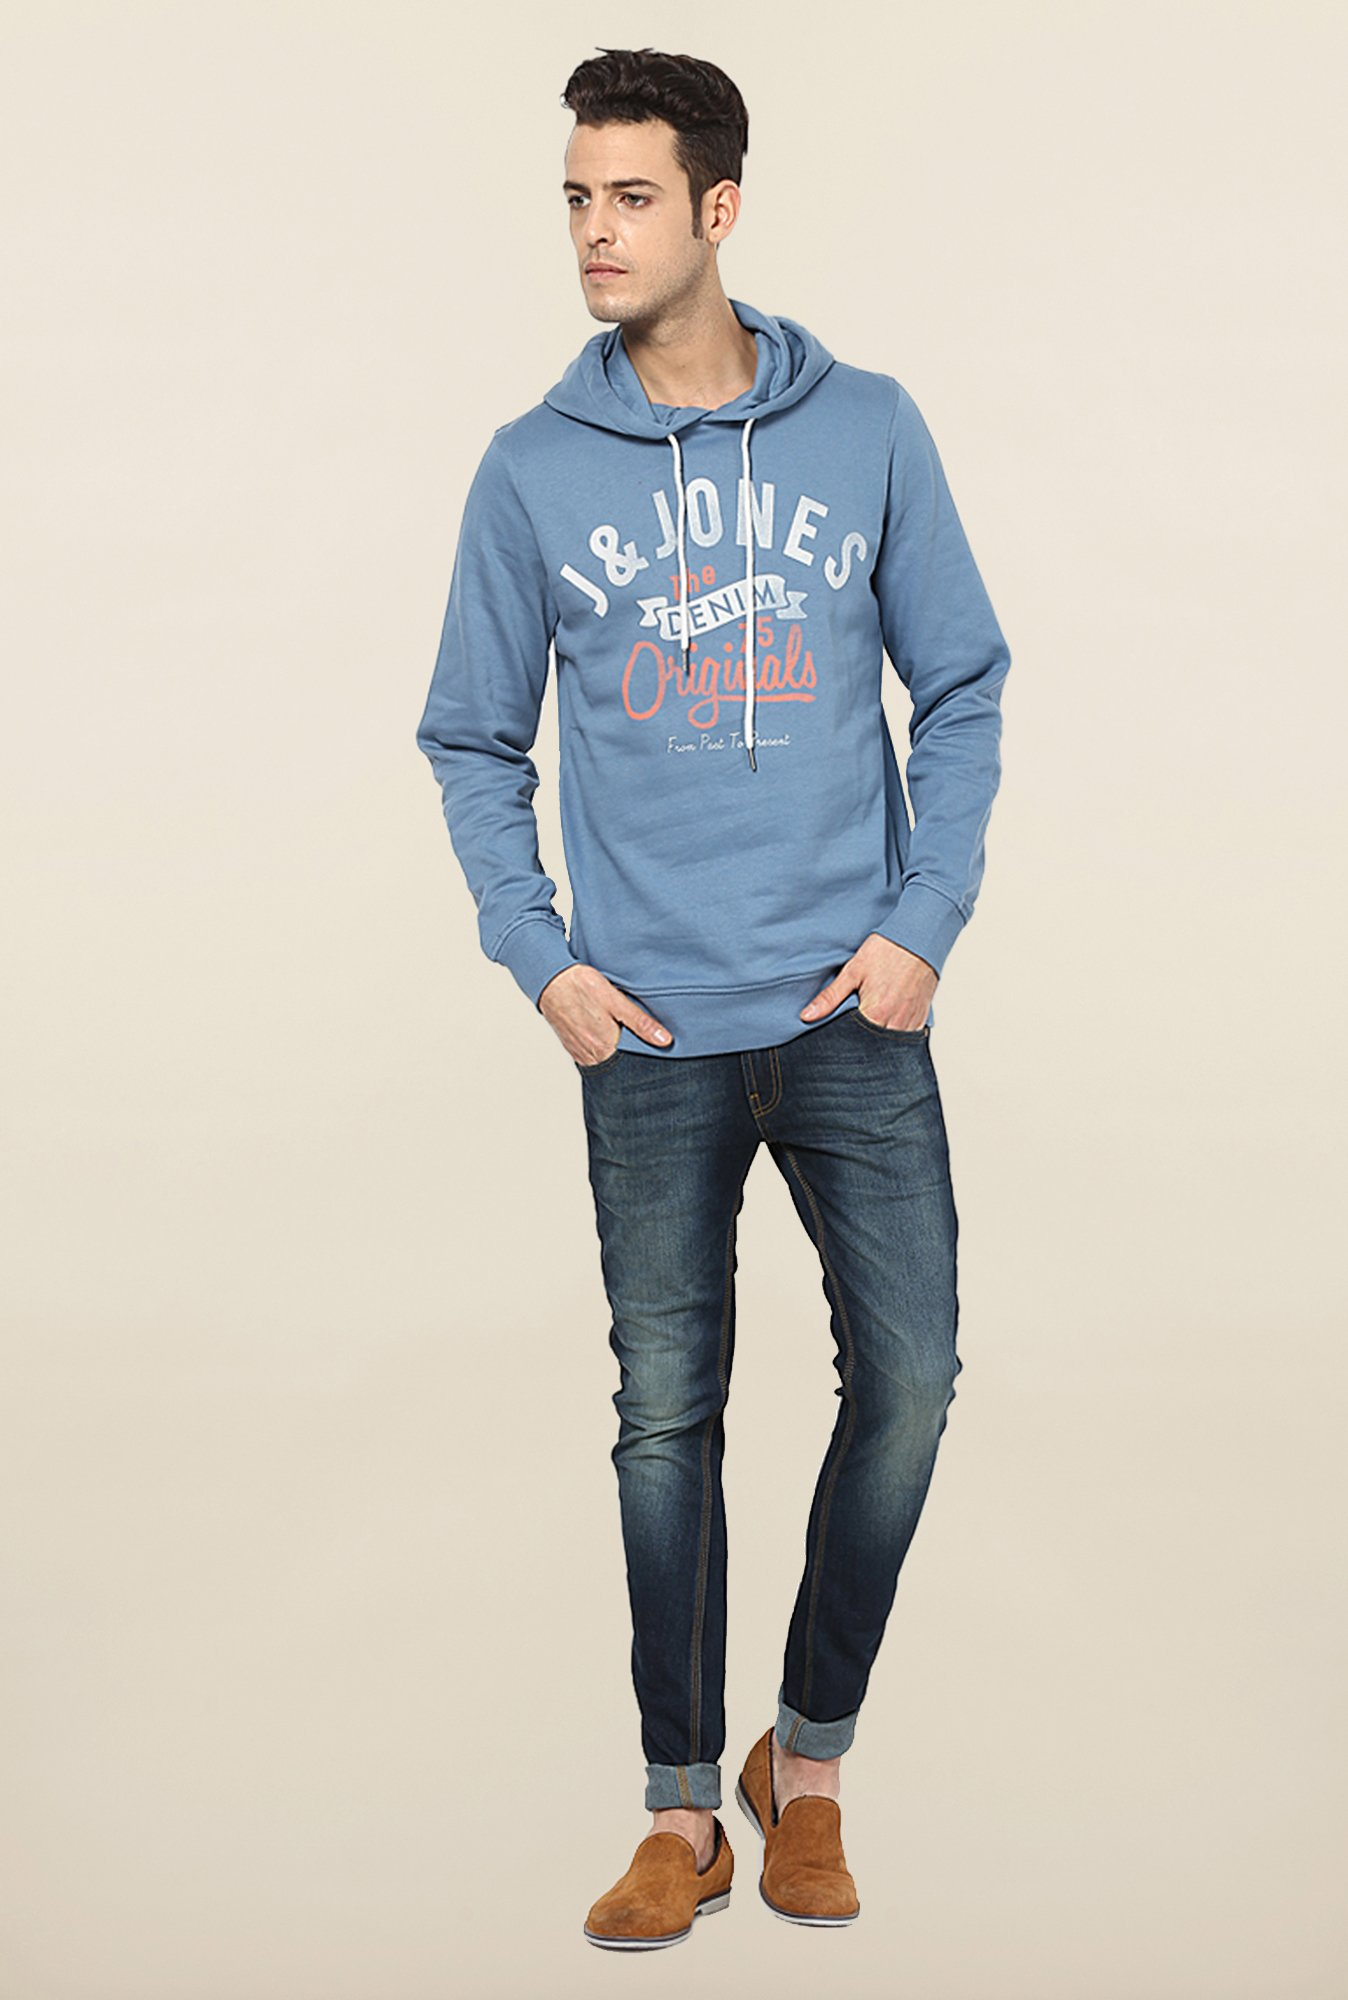 Jack & Jones Light Blue Printed Hoodie